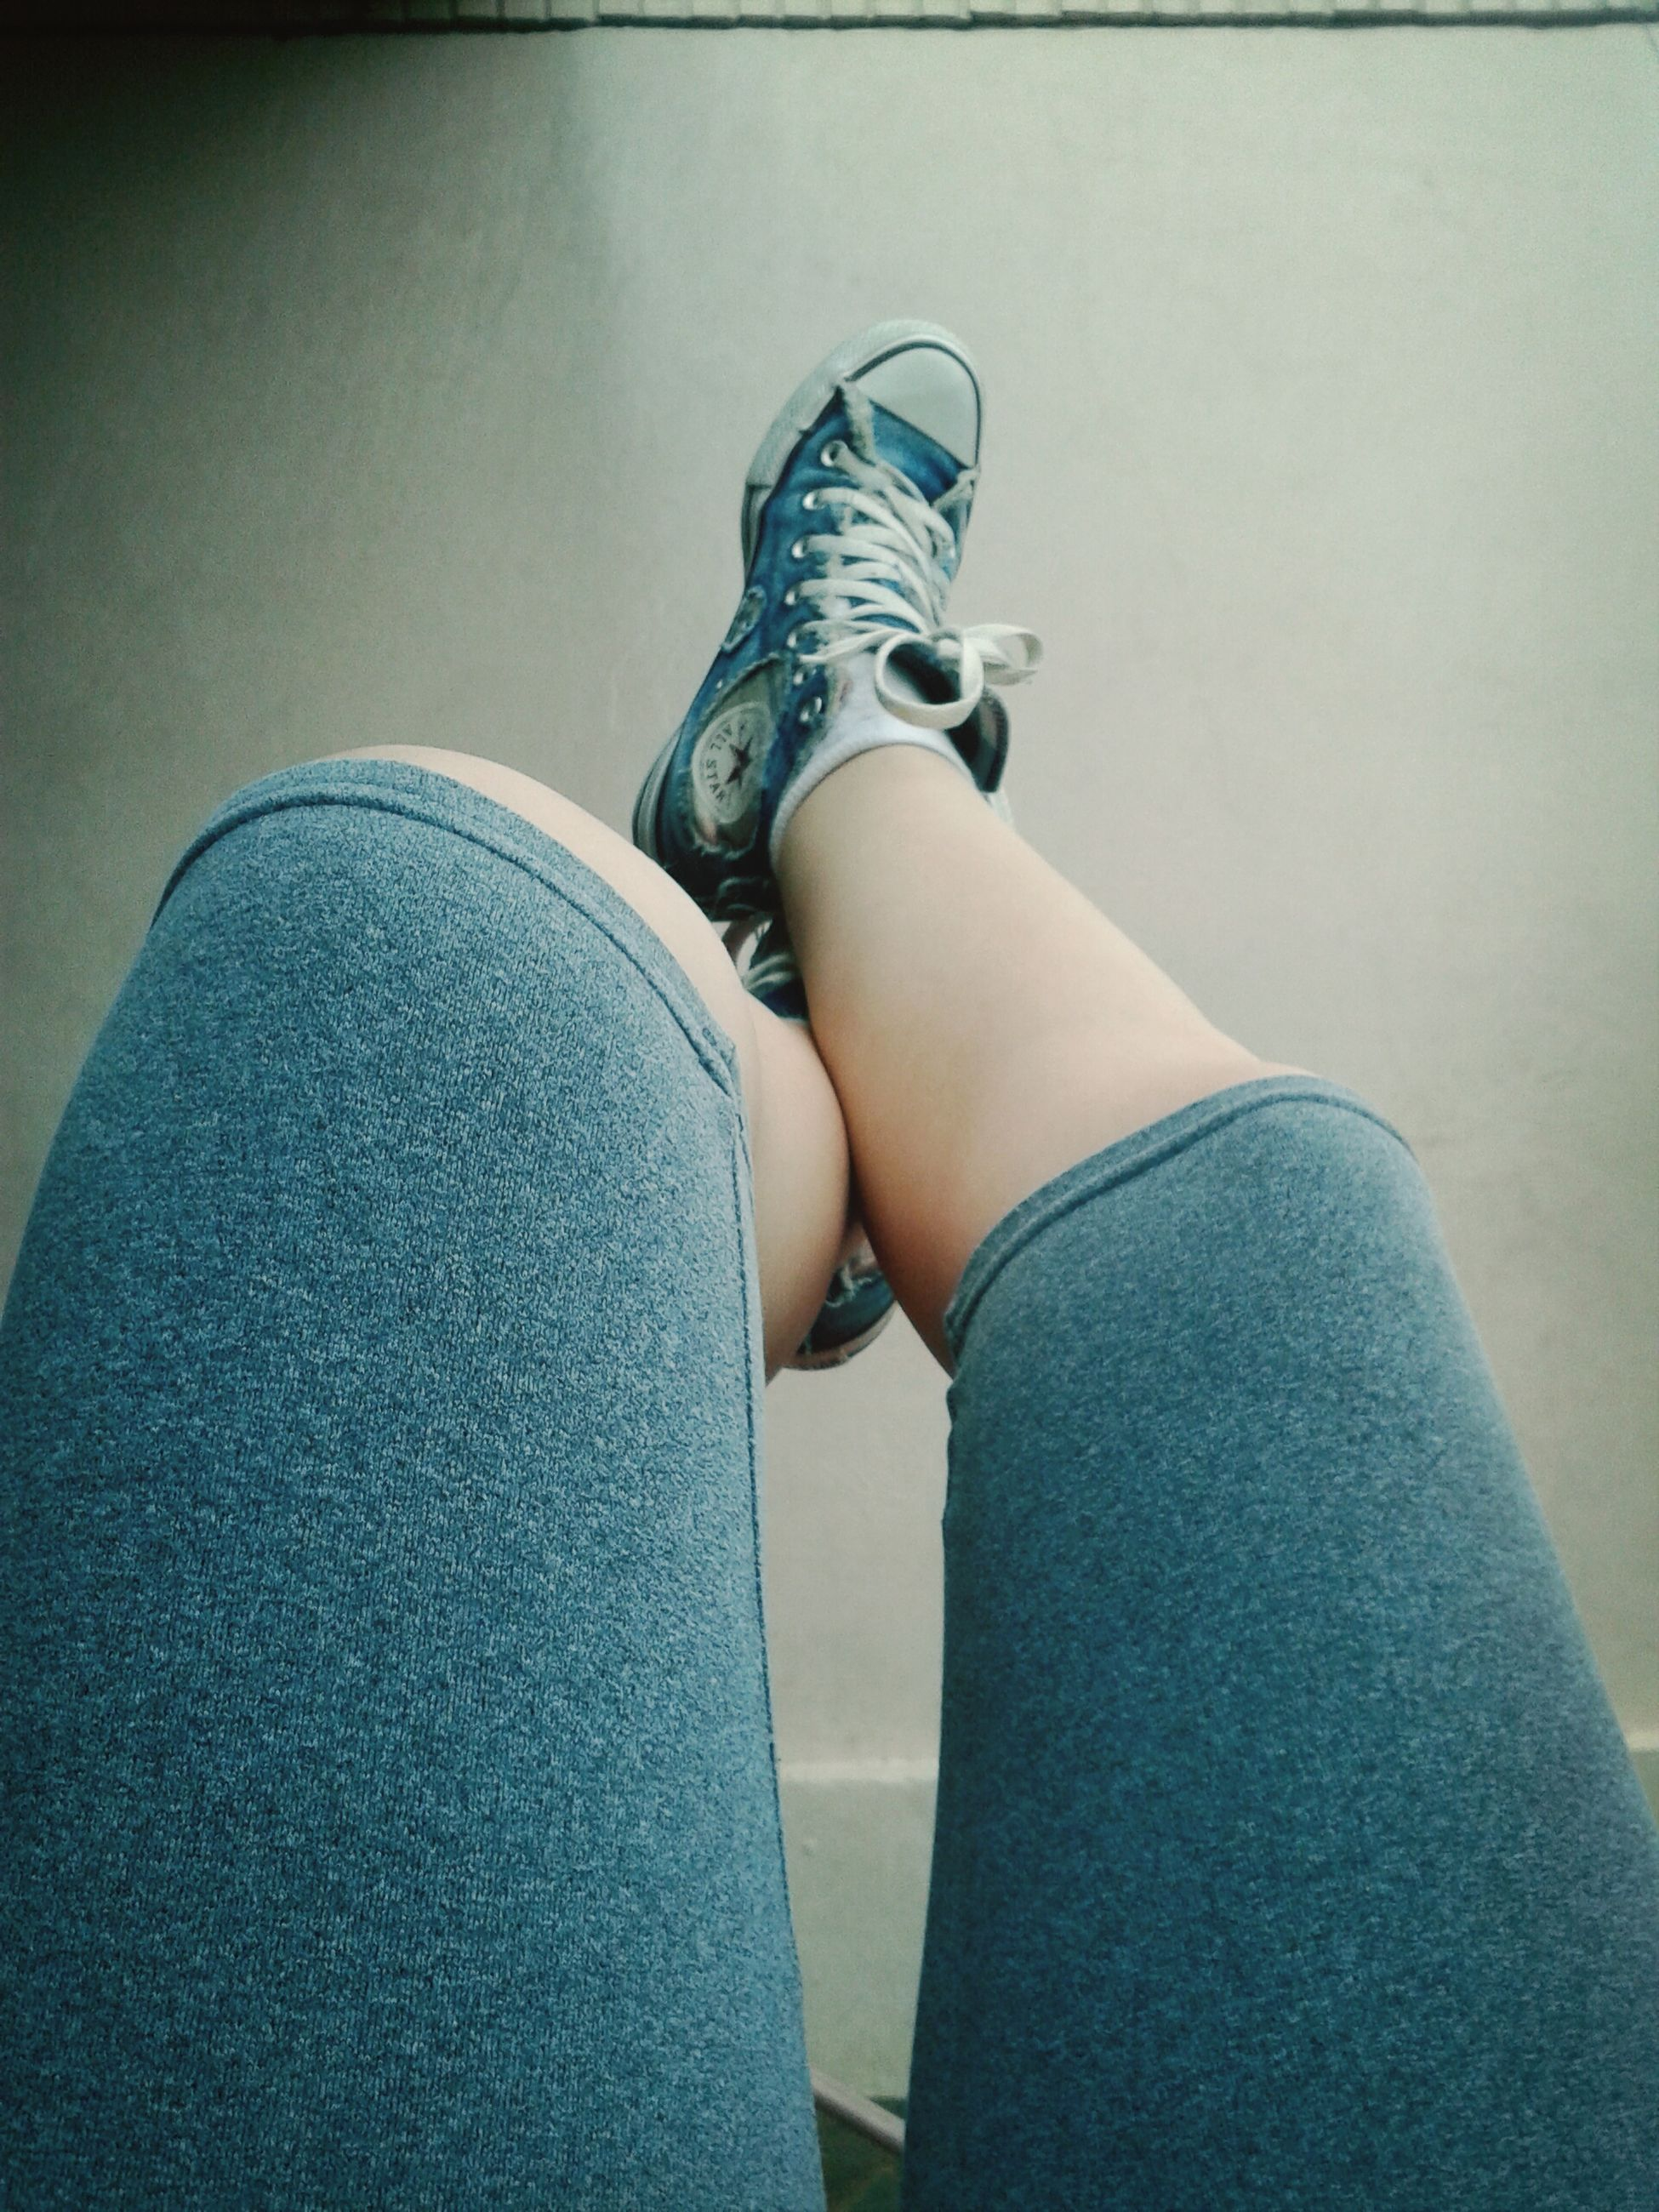 low section, person, shoe, jeans, indoors, lifestyles, casual clothing, sitting, footwear, leisure activity, relaxation, standing, human foot, personal perspective, blue, fashion